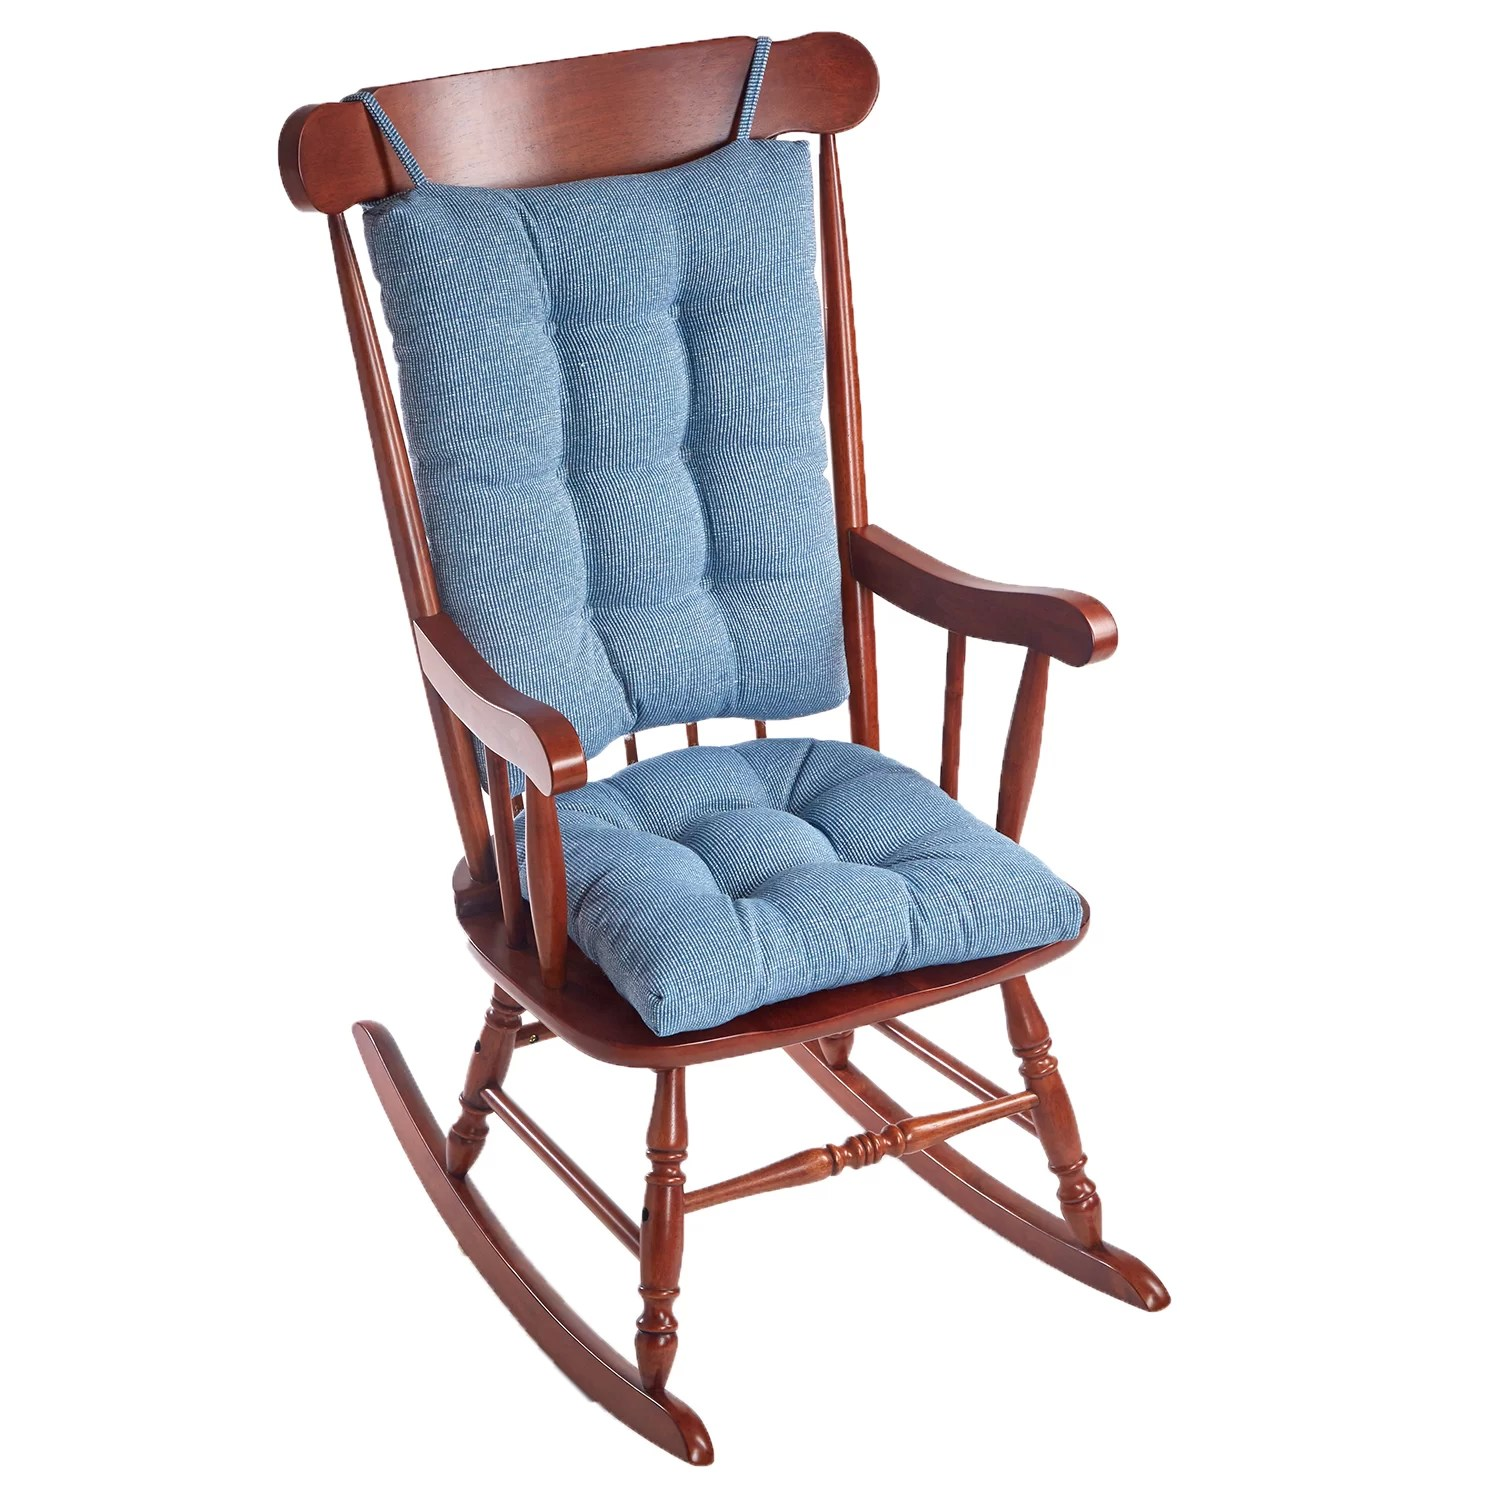 Teal Rocking Chair Klear Vu Saturn Rocking Chair Cushion And Reviews Wayfair